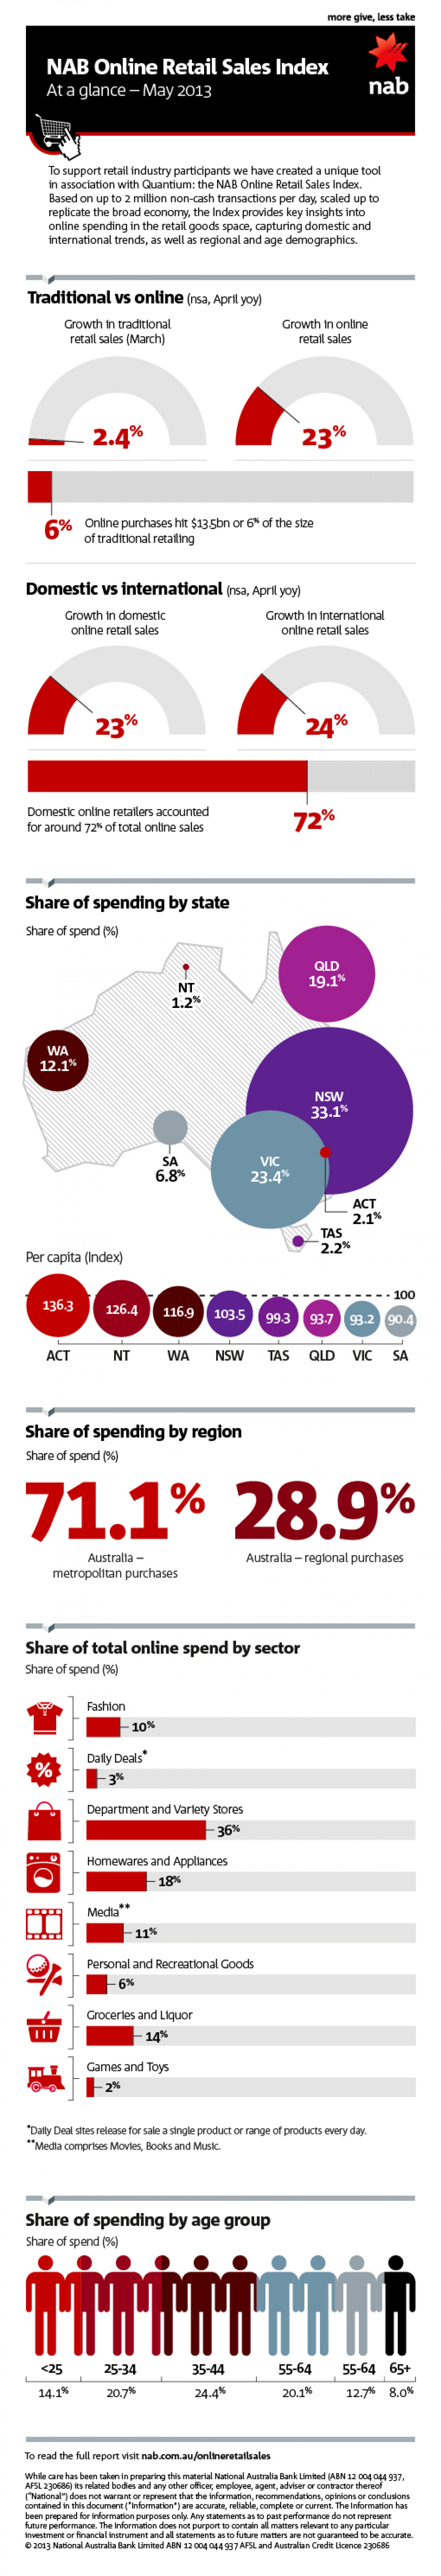 NAB Online Retail Sales Index - April 2013 Infographic